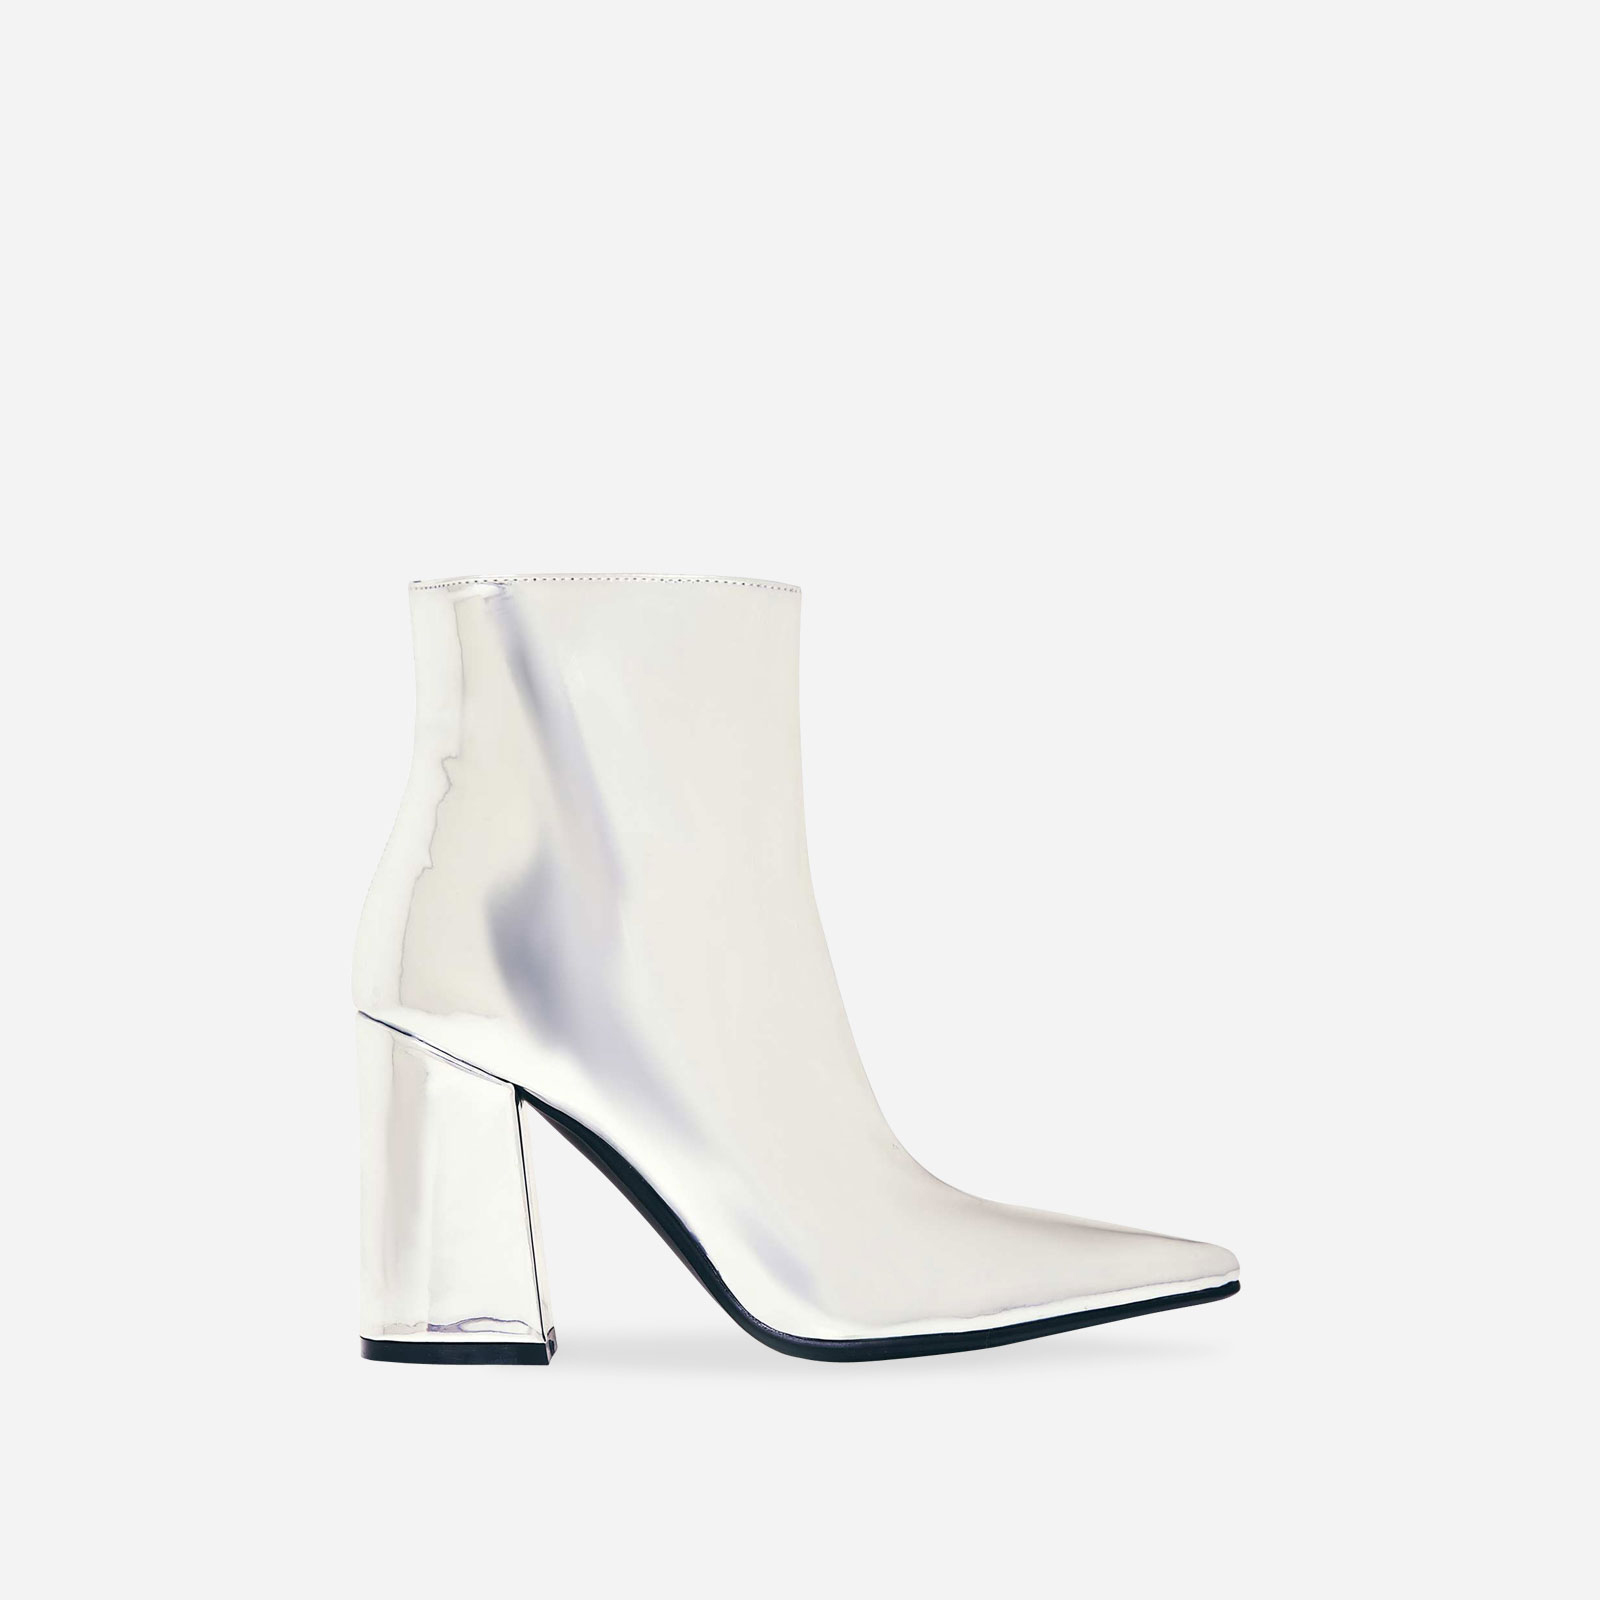 Larna Pointed Toe Ankle Boot In Metallic Silver Faux Leather